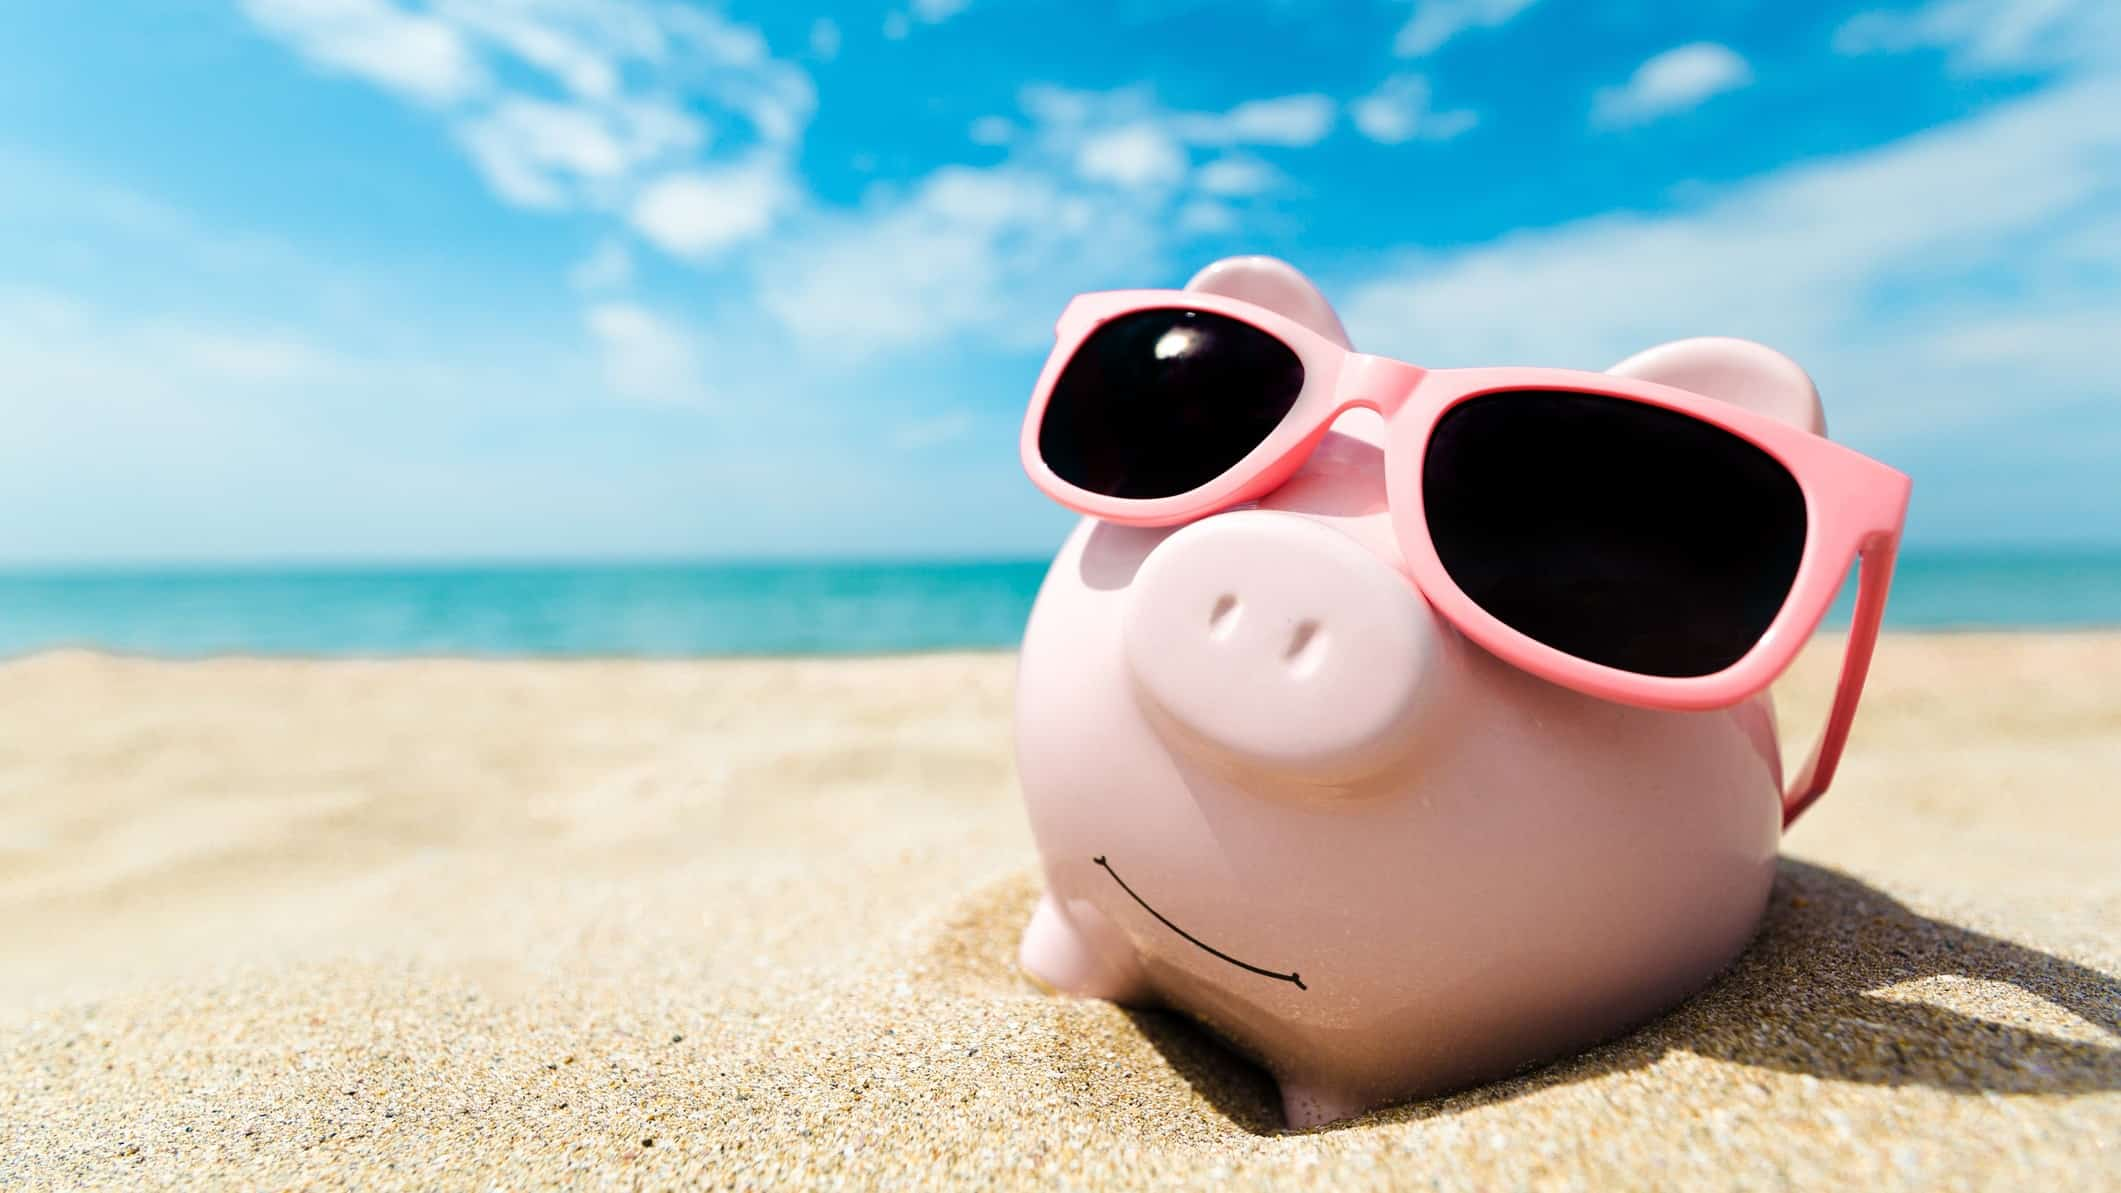 top asx shares to buy in summer or to retire represented by piggy bank on sunny beach